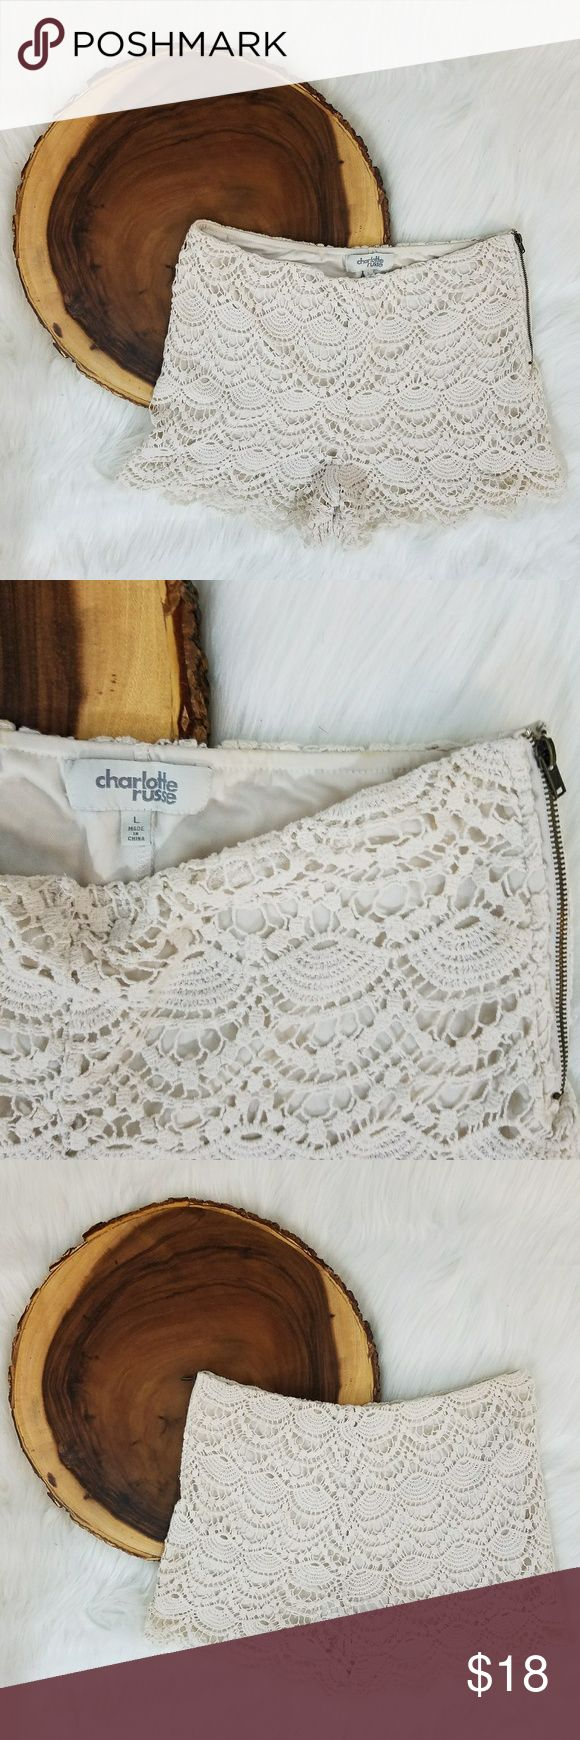 Charlotte Russe Cream Color Lace Shorts So cute for spring! Lacey short with a side zipper Size- Large Previously loved! Good condition! Charlotte Russe Shorts